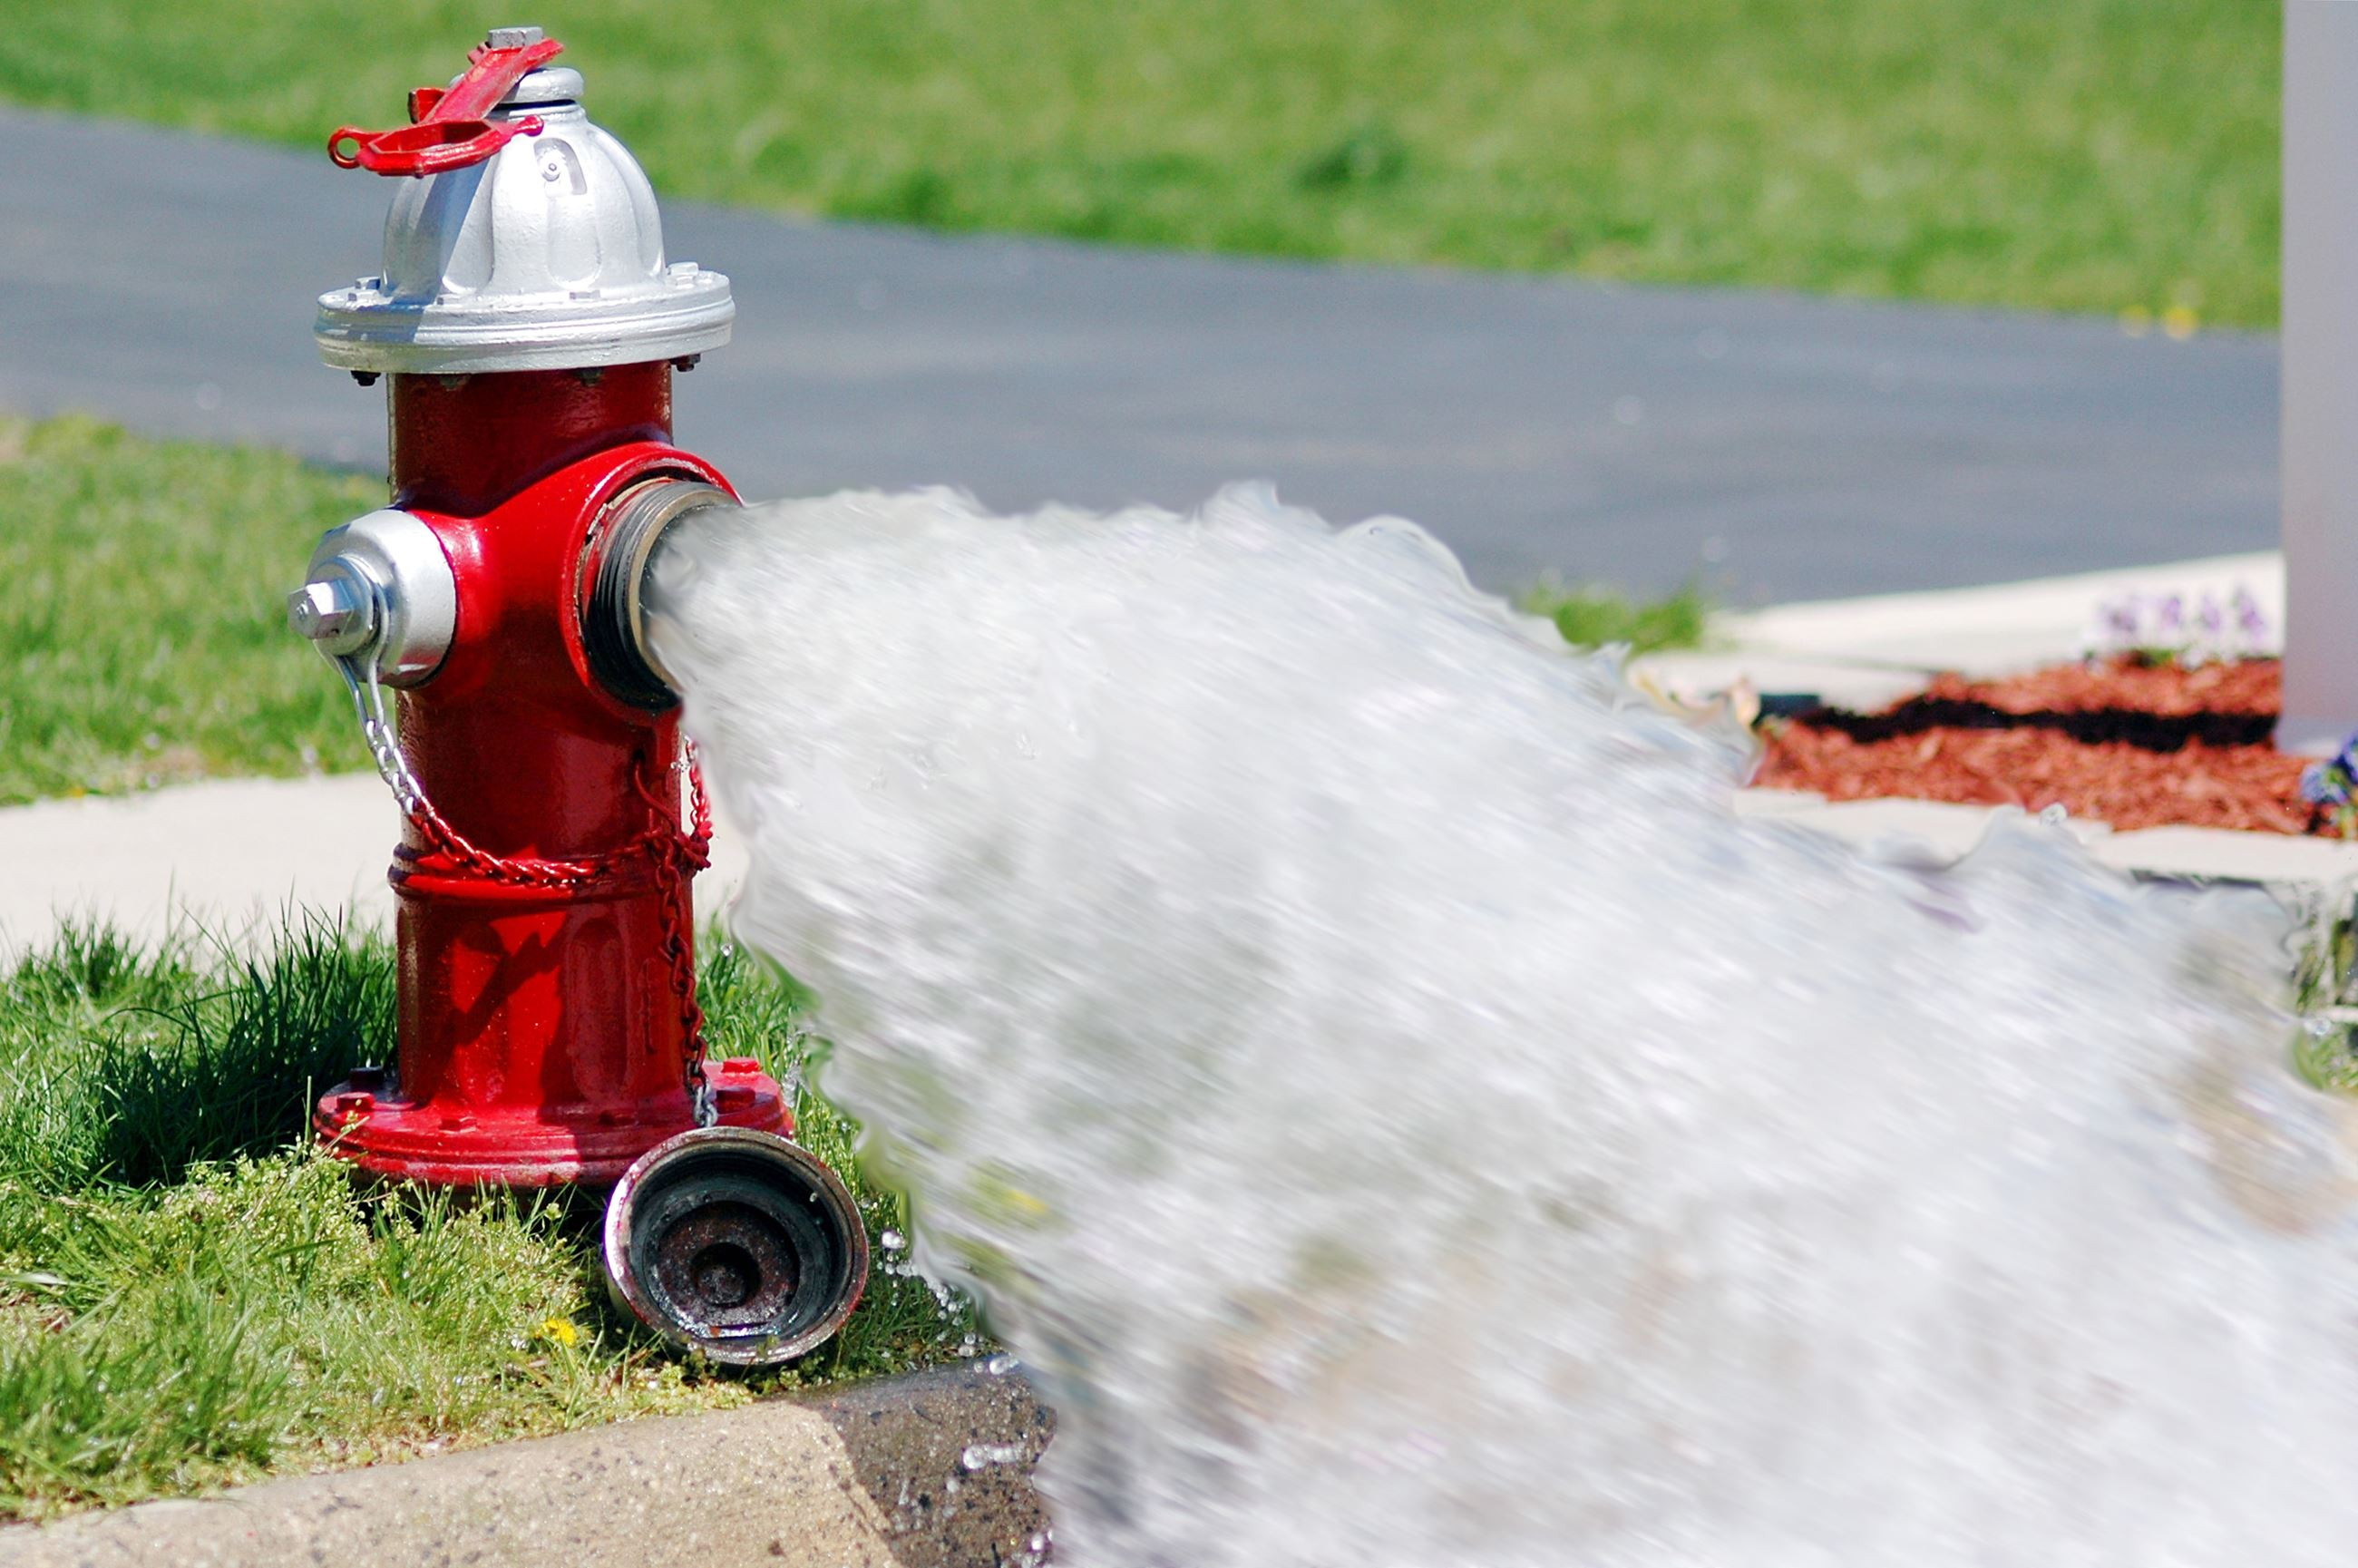 Fire-hydrant-with-water-blur